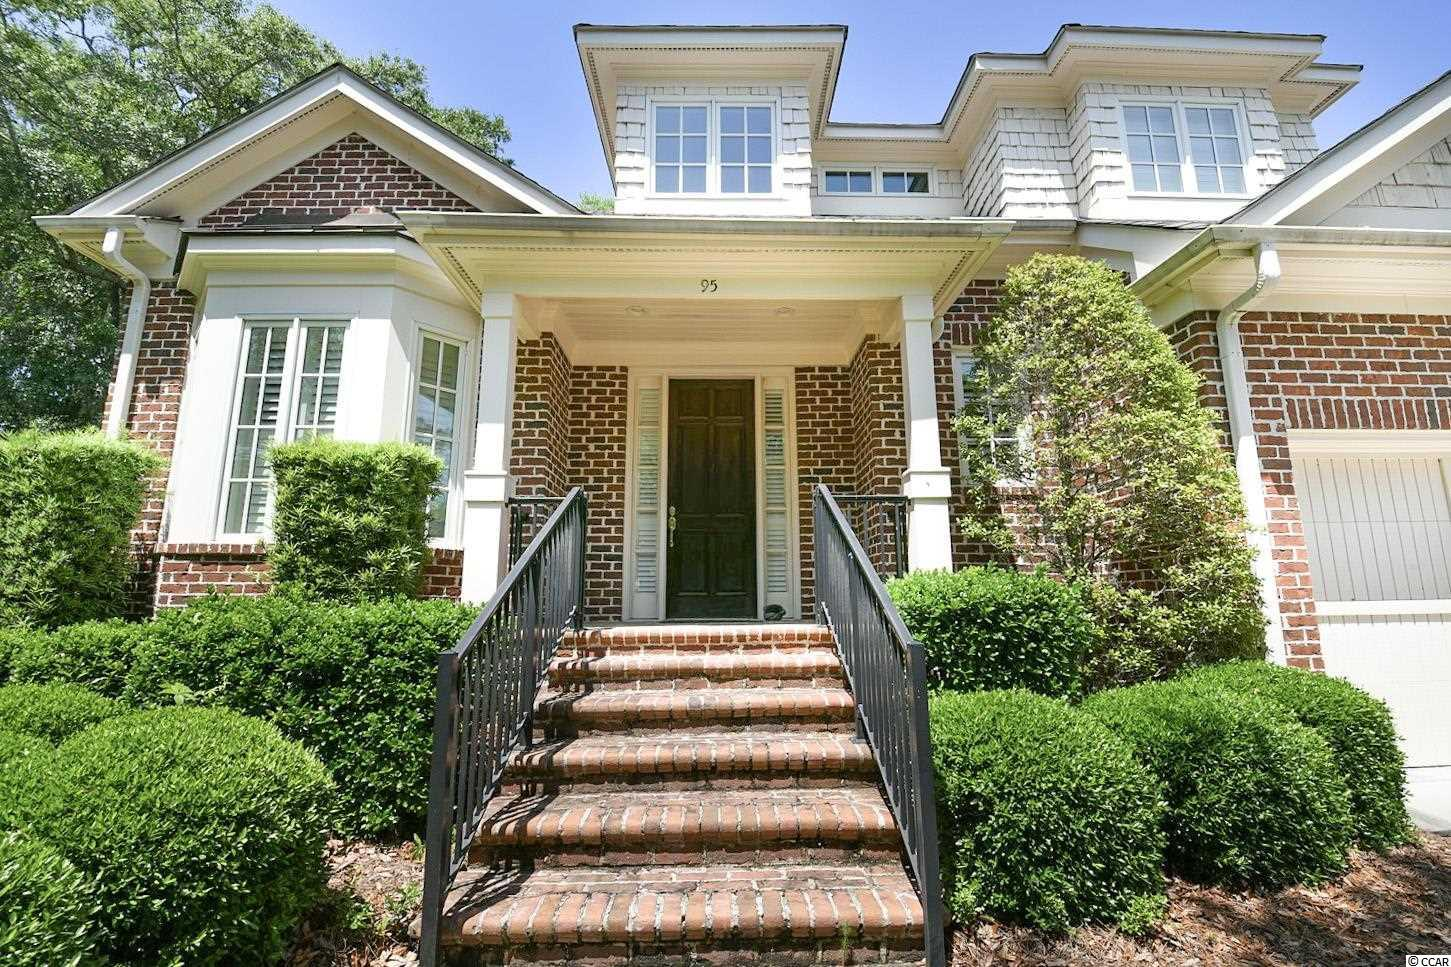 Welcome to 95 Harborclub Dr. in Pawleys Island's prestigious Reserve community. This 3 bed/3.5 bath luxury townhome has many upgrades and has been occupied very little since construction. The home has beautiful hardwood flooring downstairs, a custom trim package and a large living room with a vaulted ceiling, built-ins and a gas fireplace. The kitchen is open to the dining area and has attractive granite counters and an island with gas cook-tops. The master bedroom is located on the ground level and has a very spacious bathroom with dual sinks, a soaking tub and large tiled shower. Also on the ground floor is a powder room, laundry room and a beautiful Carolina room facing the back yard. As you reach the second level, you'll enter a large sitting area that can be used as a second living room or a game room. Two more generously sized bedrooms are located upstairs, both with private full bathrooms. The second level also offers plentiful storage and an office area. Whole-house generator added by the owner.   Owners and guests are only a short walk away from The Reserve Harbor Yacht Club and Marina, where members enjoy wet or dry boat slips, a waterfront bar/restaurant and swimming pool. Owners can also access Litchfield by the Sea's private beach by golf cart, automobile or bicycle. Don't miss this opportunity to own a highly sought-after Harbor Club Villa in The Reserve.